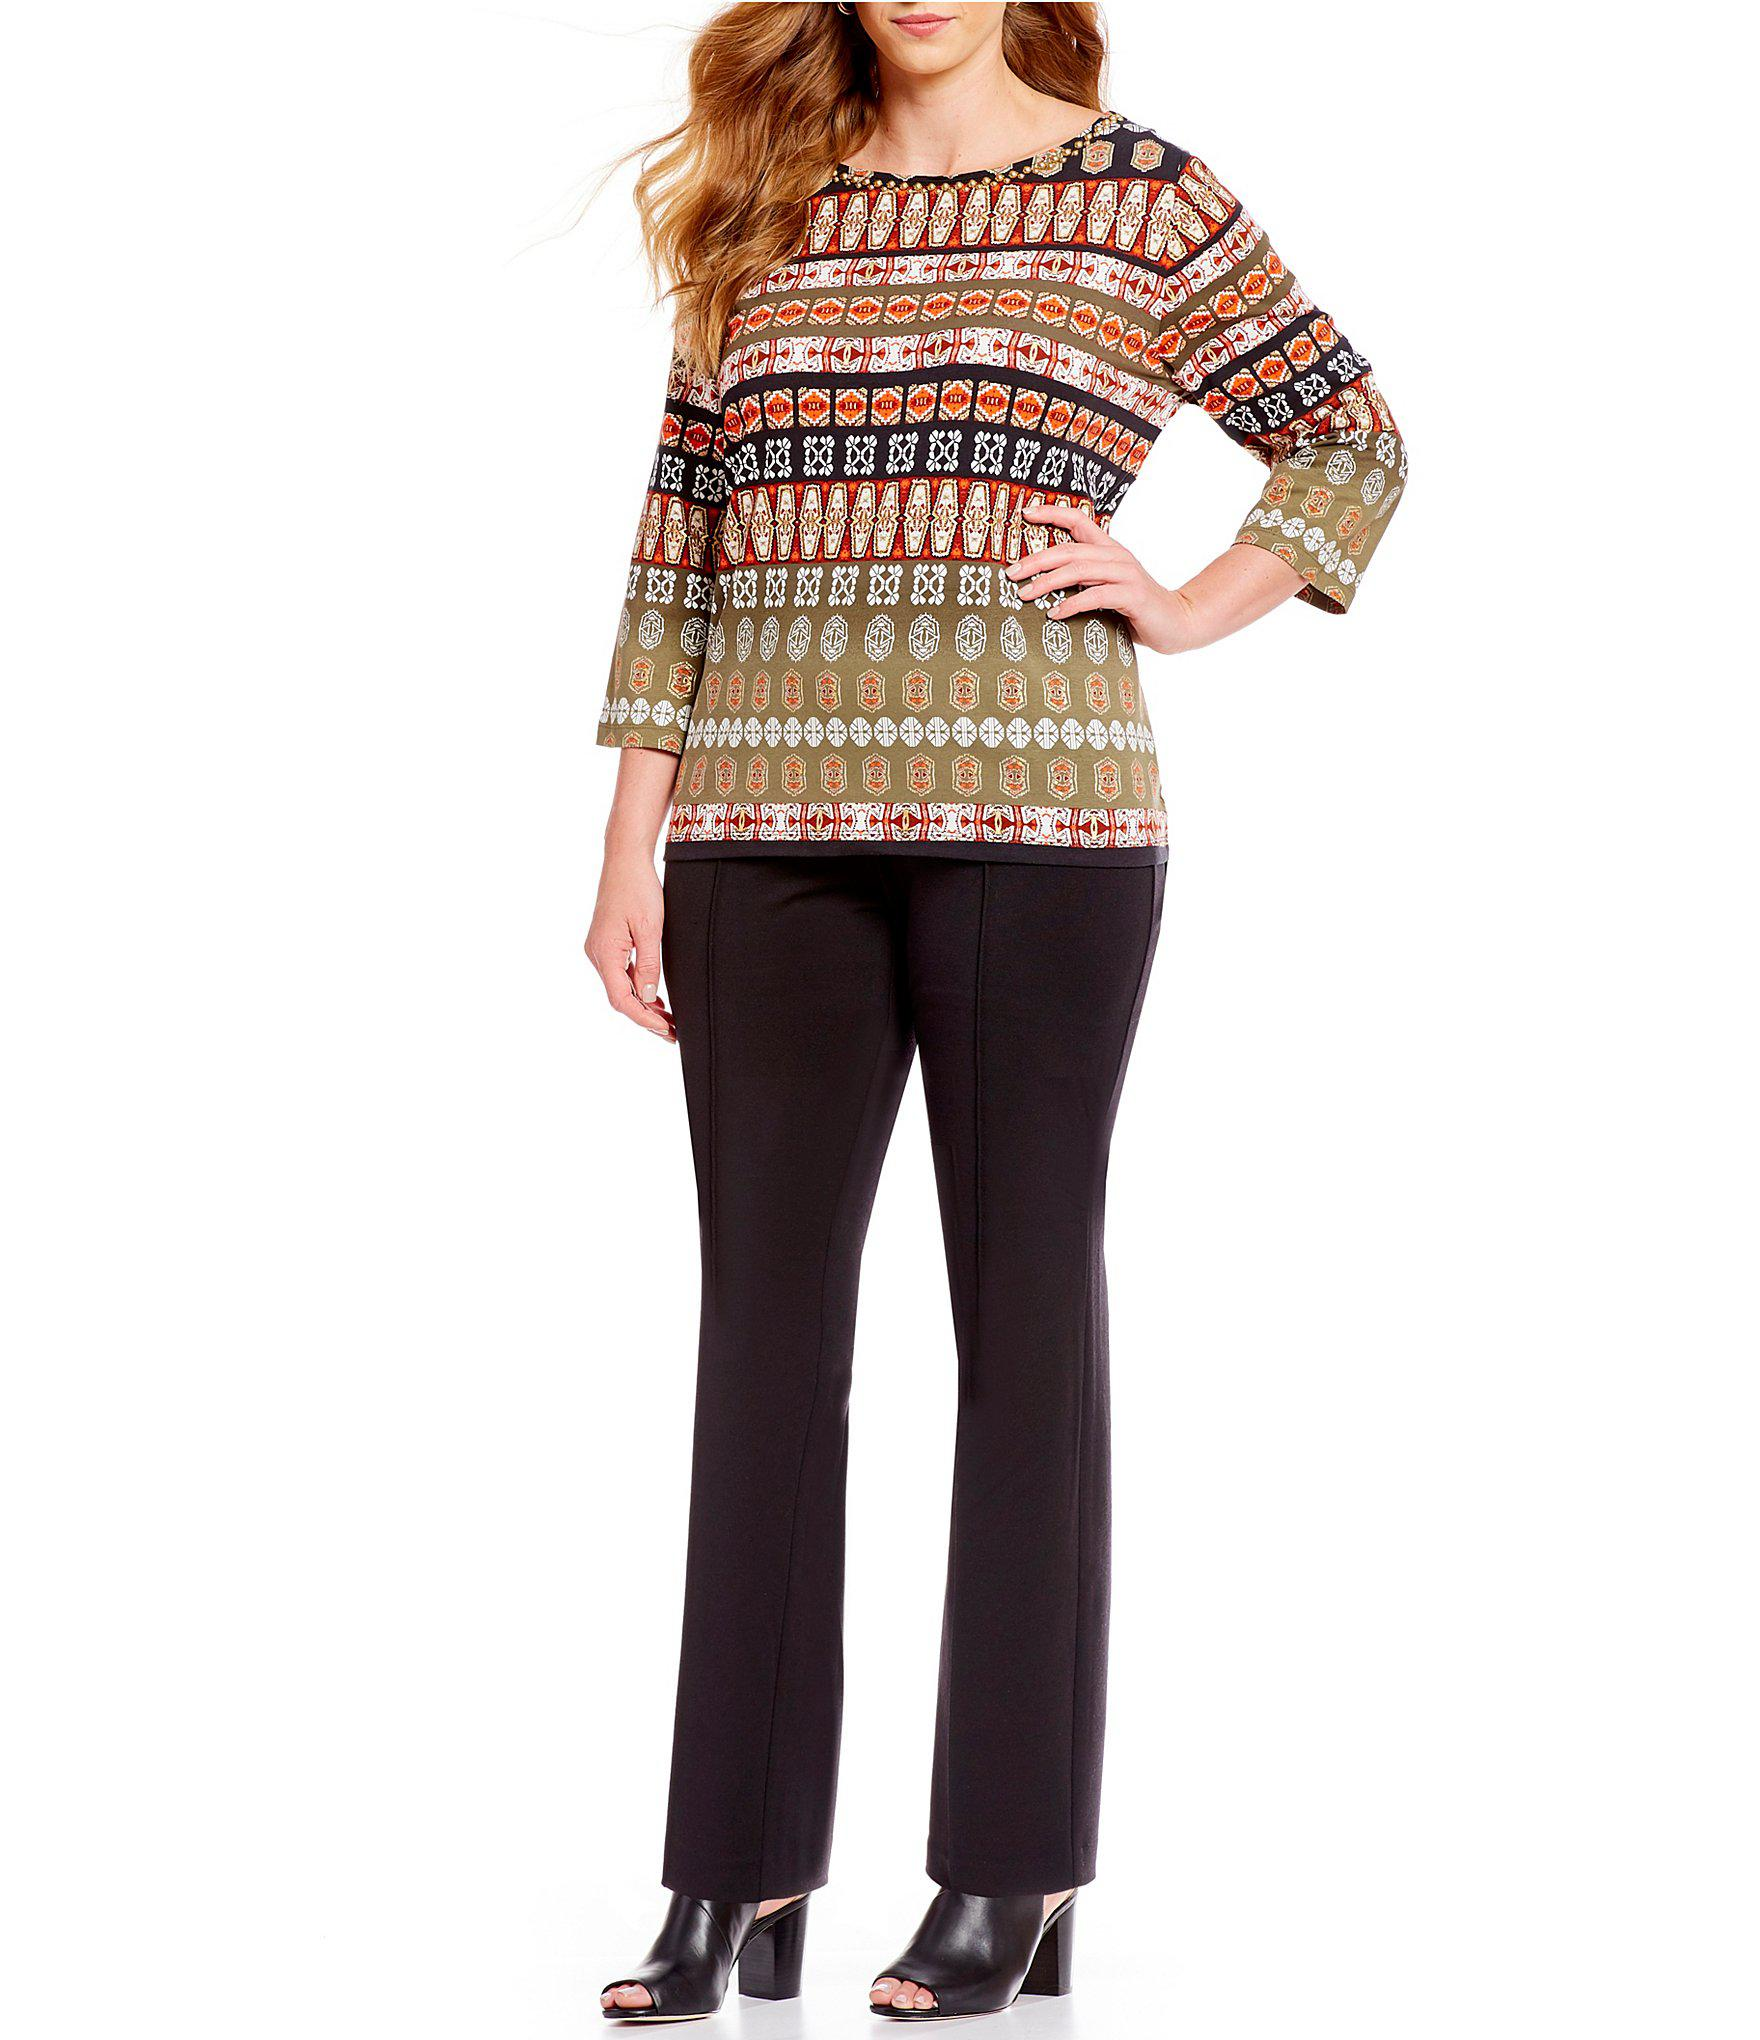 3ac72e2c63a46 Ruby Rd - Multicolor Plus Size Embellished Boat Neck Bands Border Print  Foil Detail Knit Top. View fullscreen